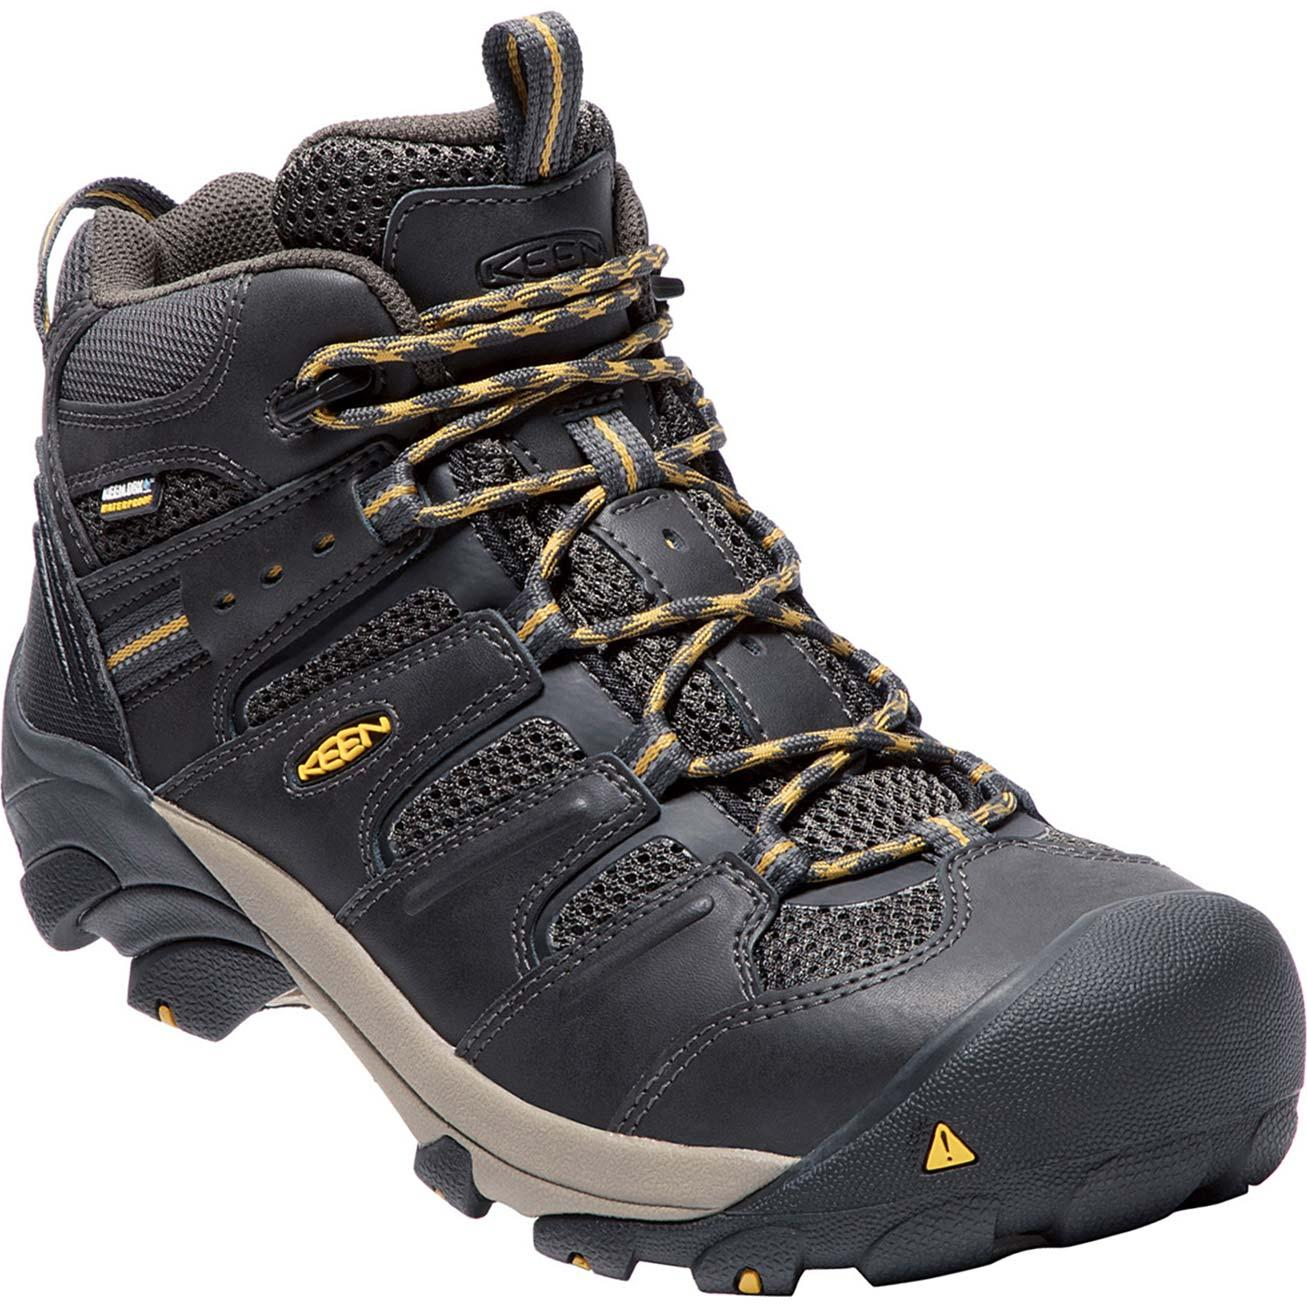 05d2bcbed778 KEEN Utility® Lansing Mid Steel Toe Waterproof Work ShoeKEEN Utility® Lansing  Mid Steel Toe Waterproof Work Shoe